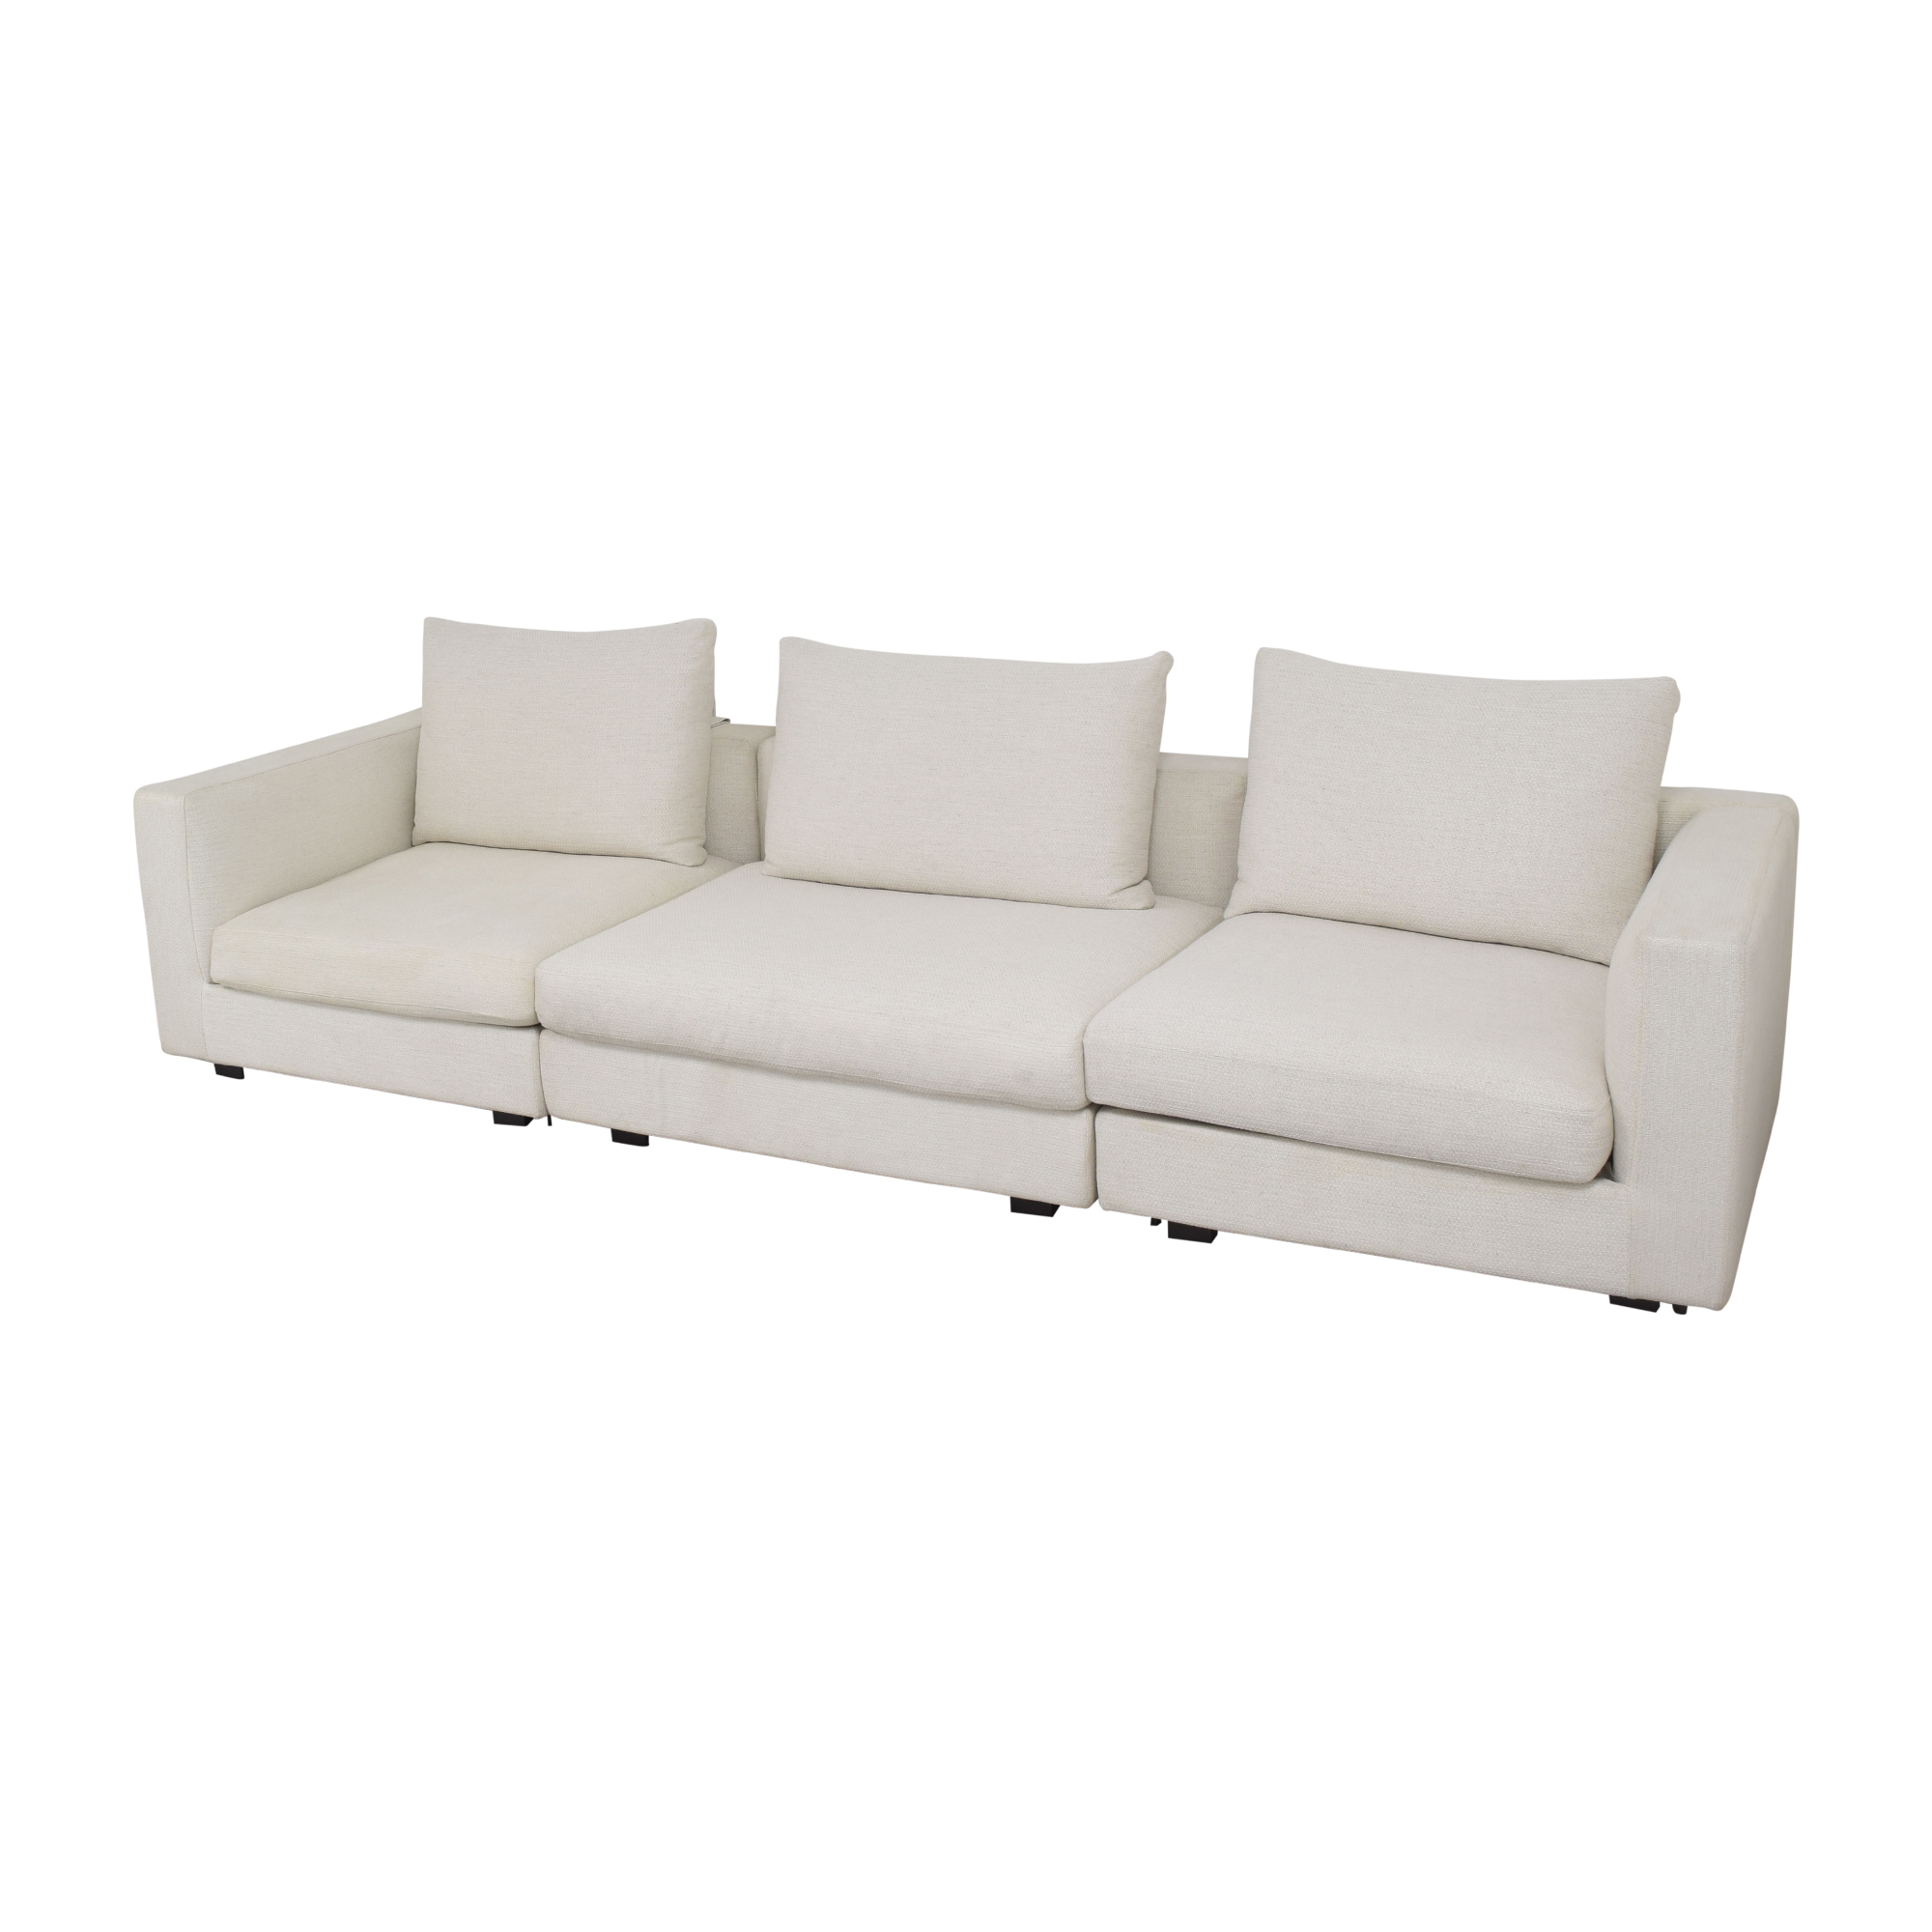 Camerich Freetown Sectional Sofa with Ottoman sale